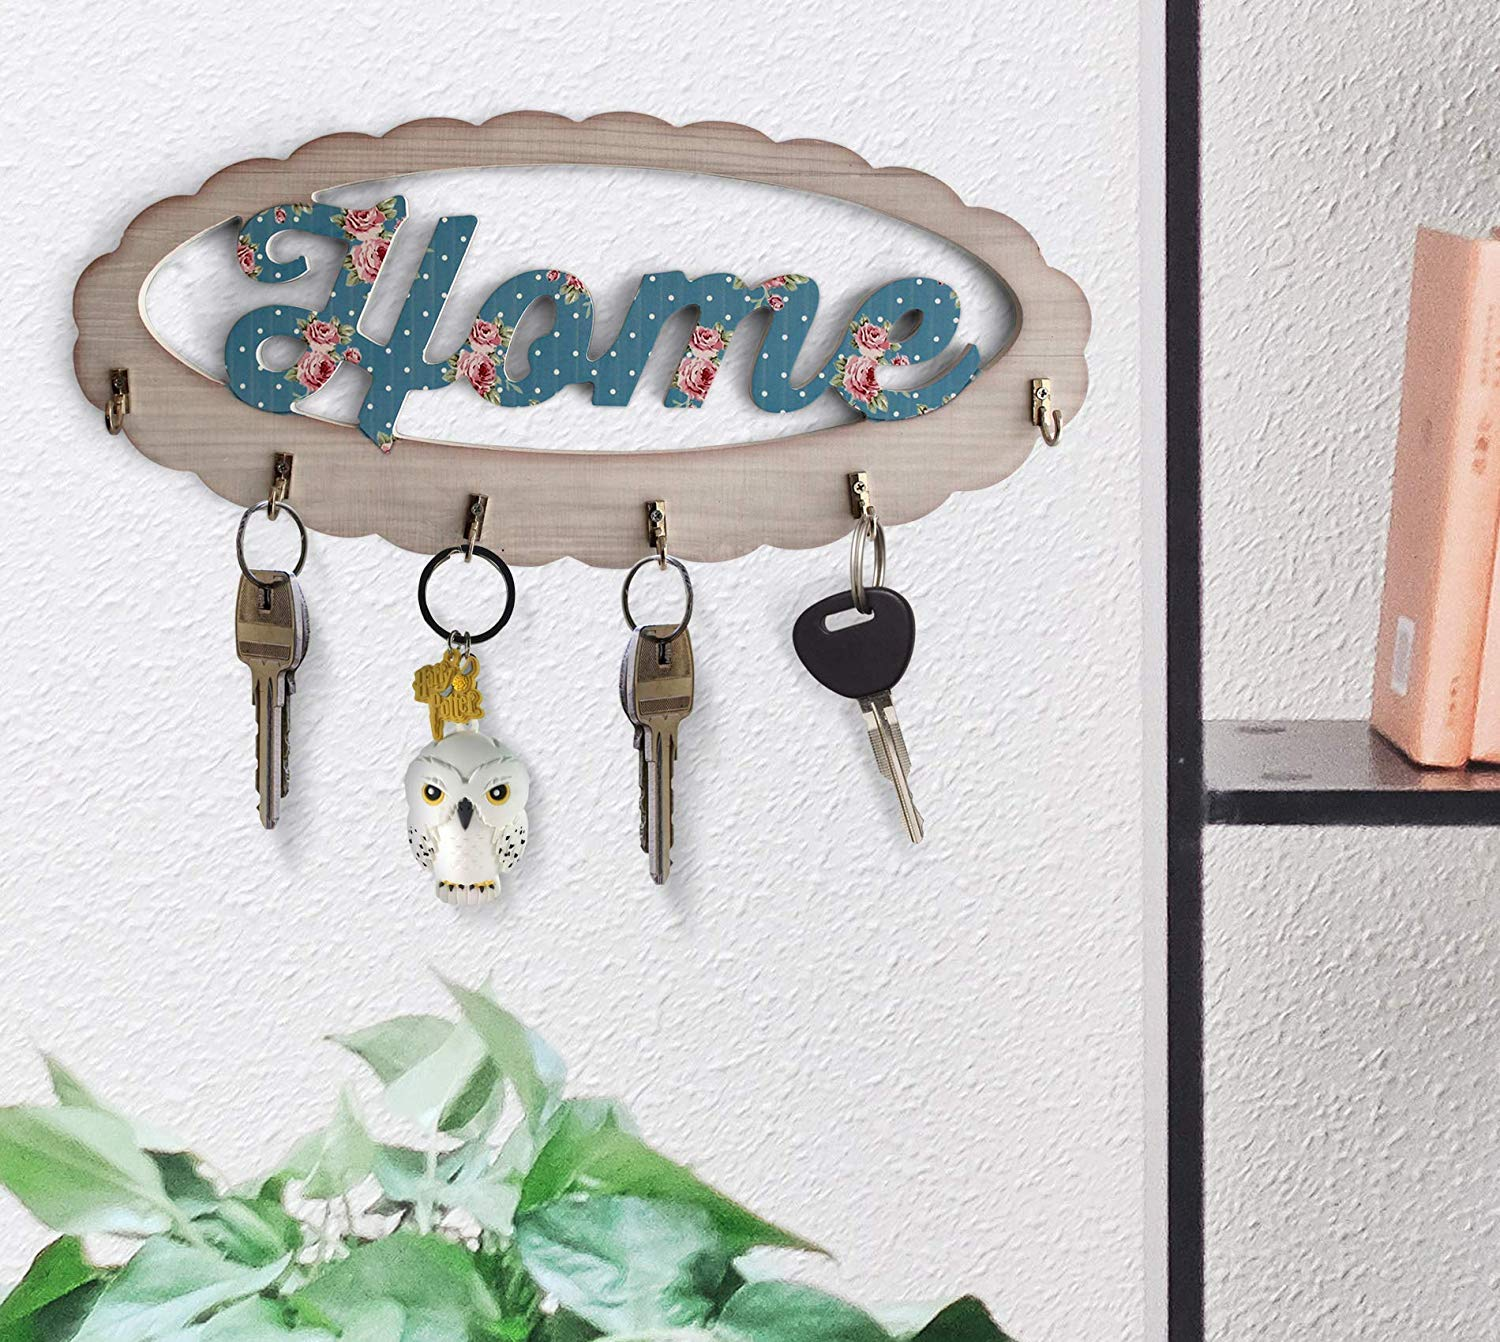 Zbno Wooden Key Hanger Holder Key chain Holder Antique for Wall Mounted Home Decor